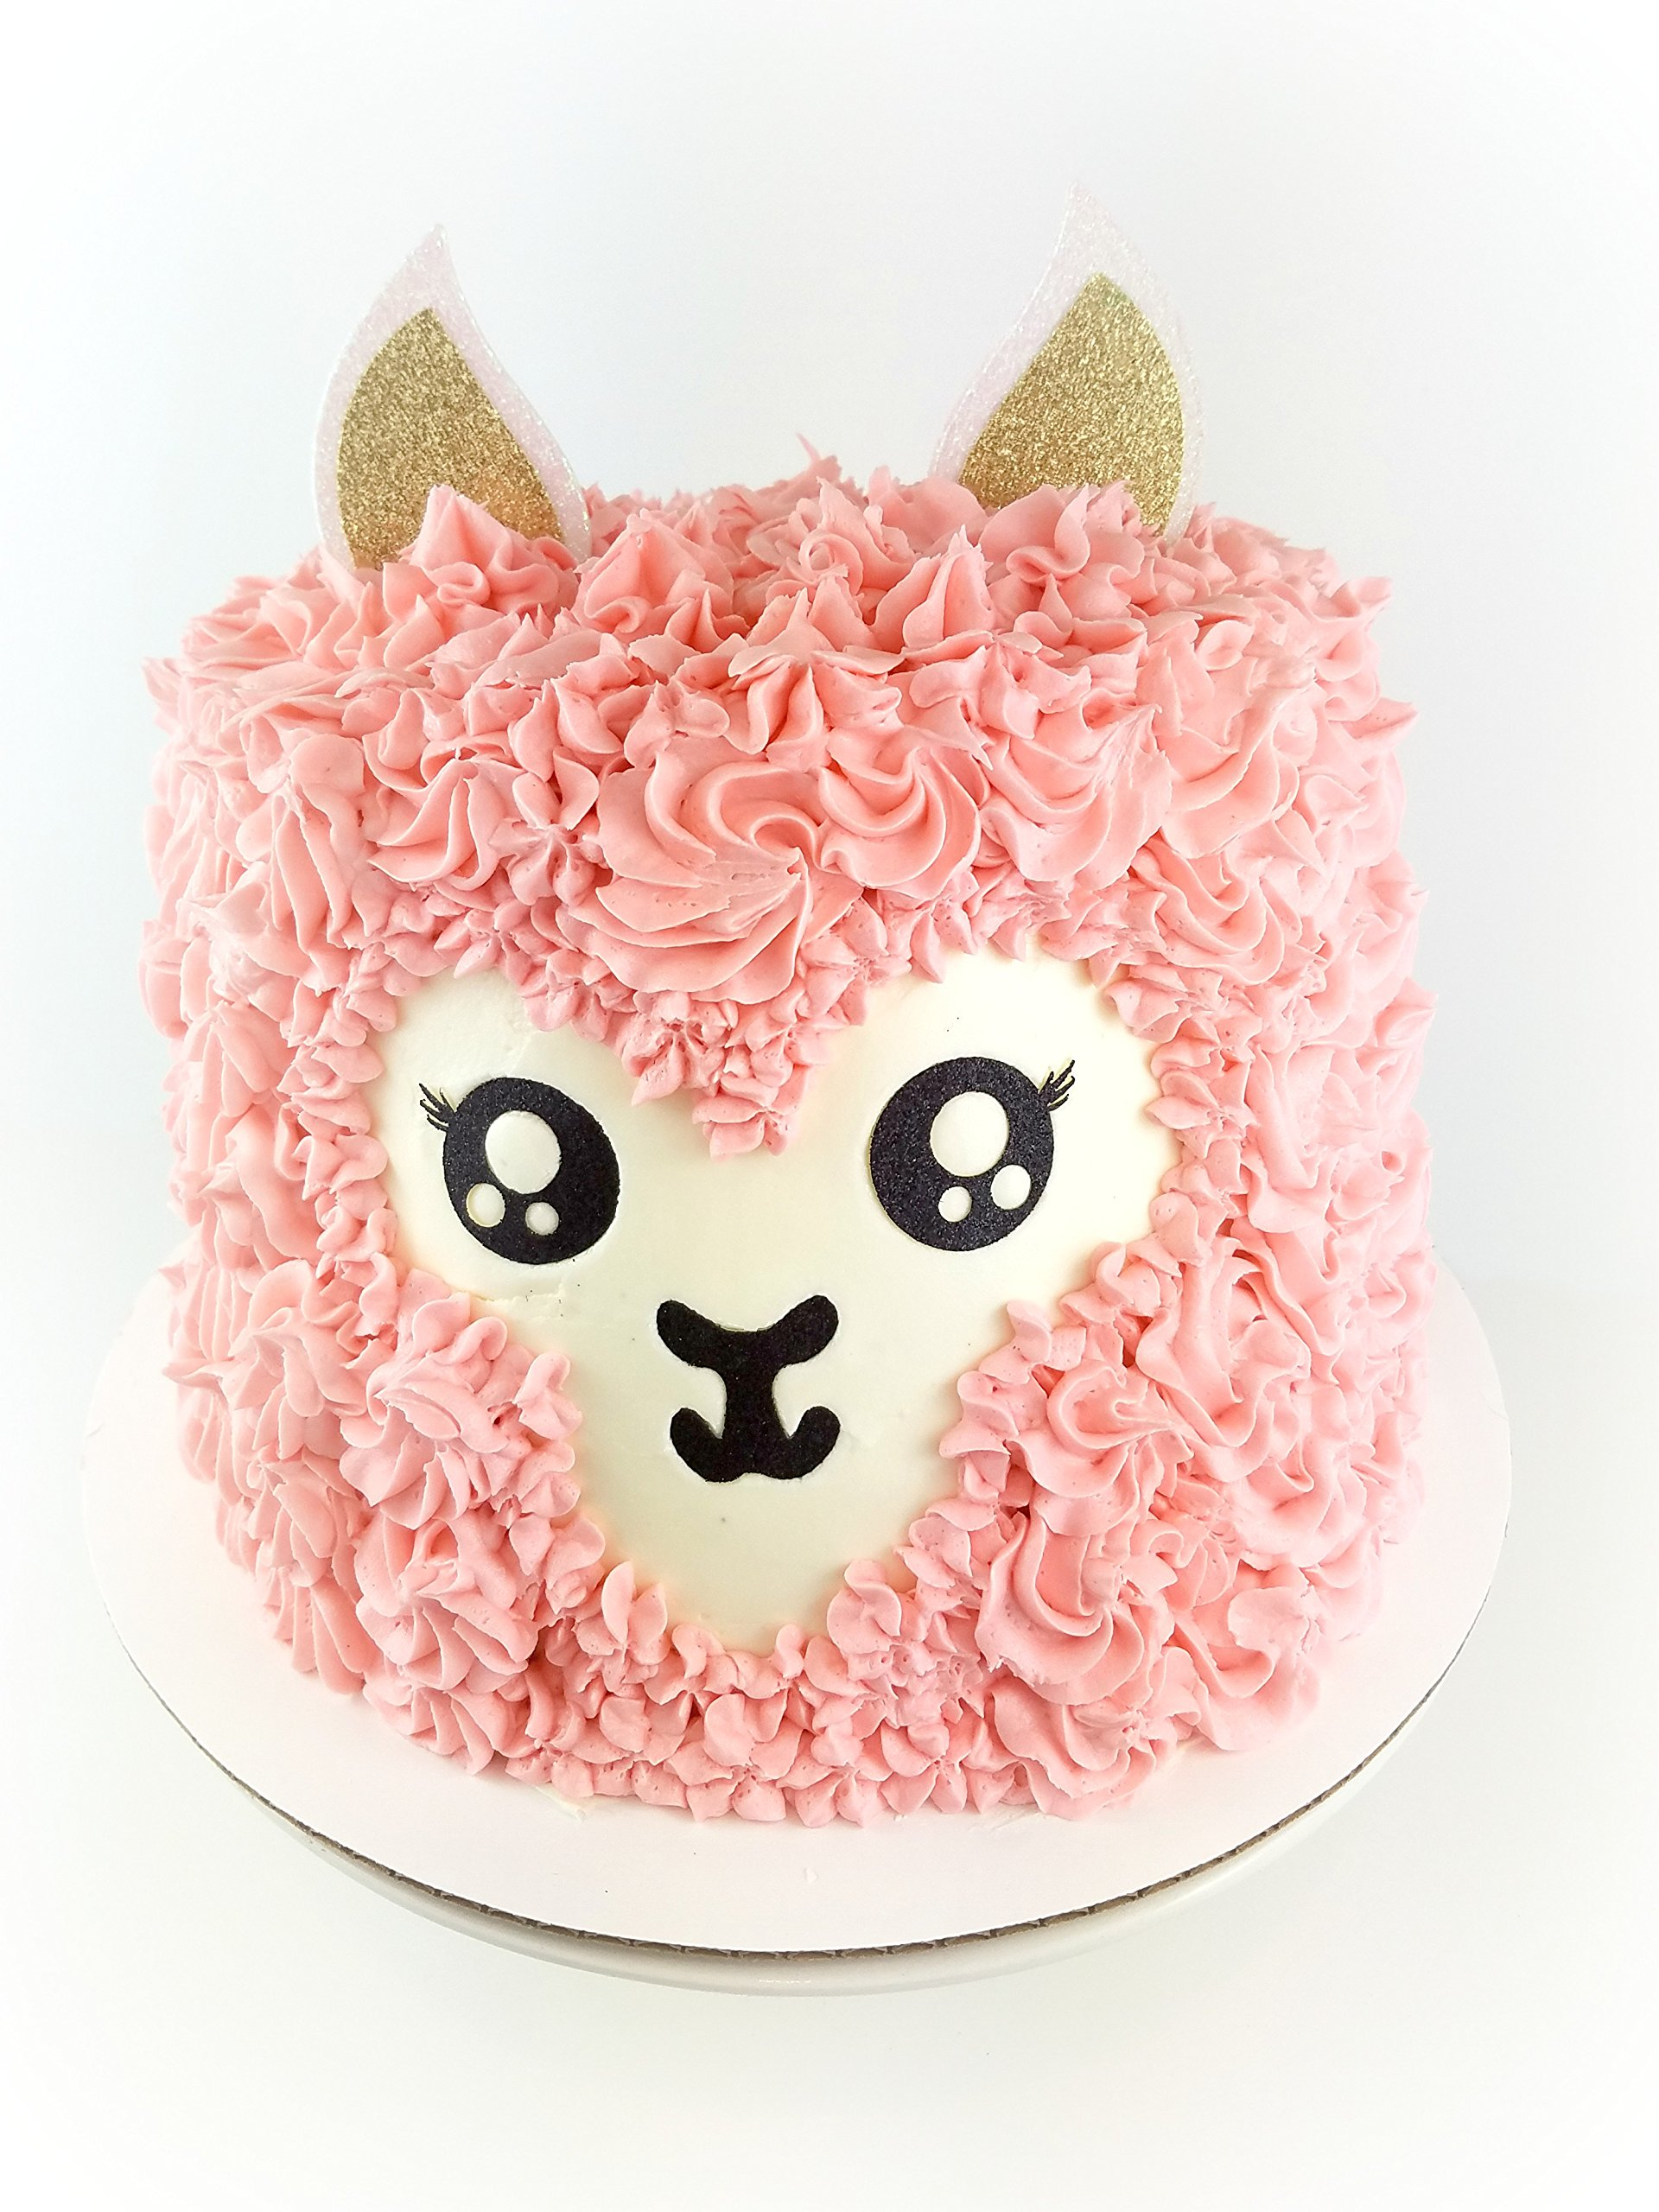 Handmade Llama Birthday Cake Topper Decoration - Alpaca - Made in USA with Double Sided Glitter Stock (Cake not included) by CMS Design Studio